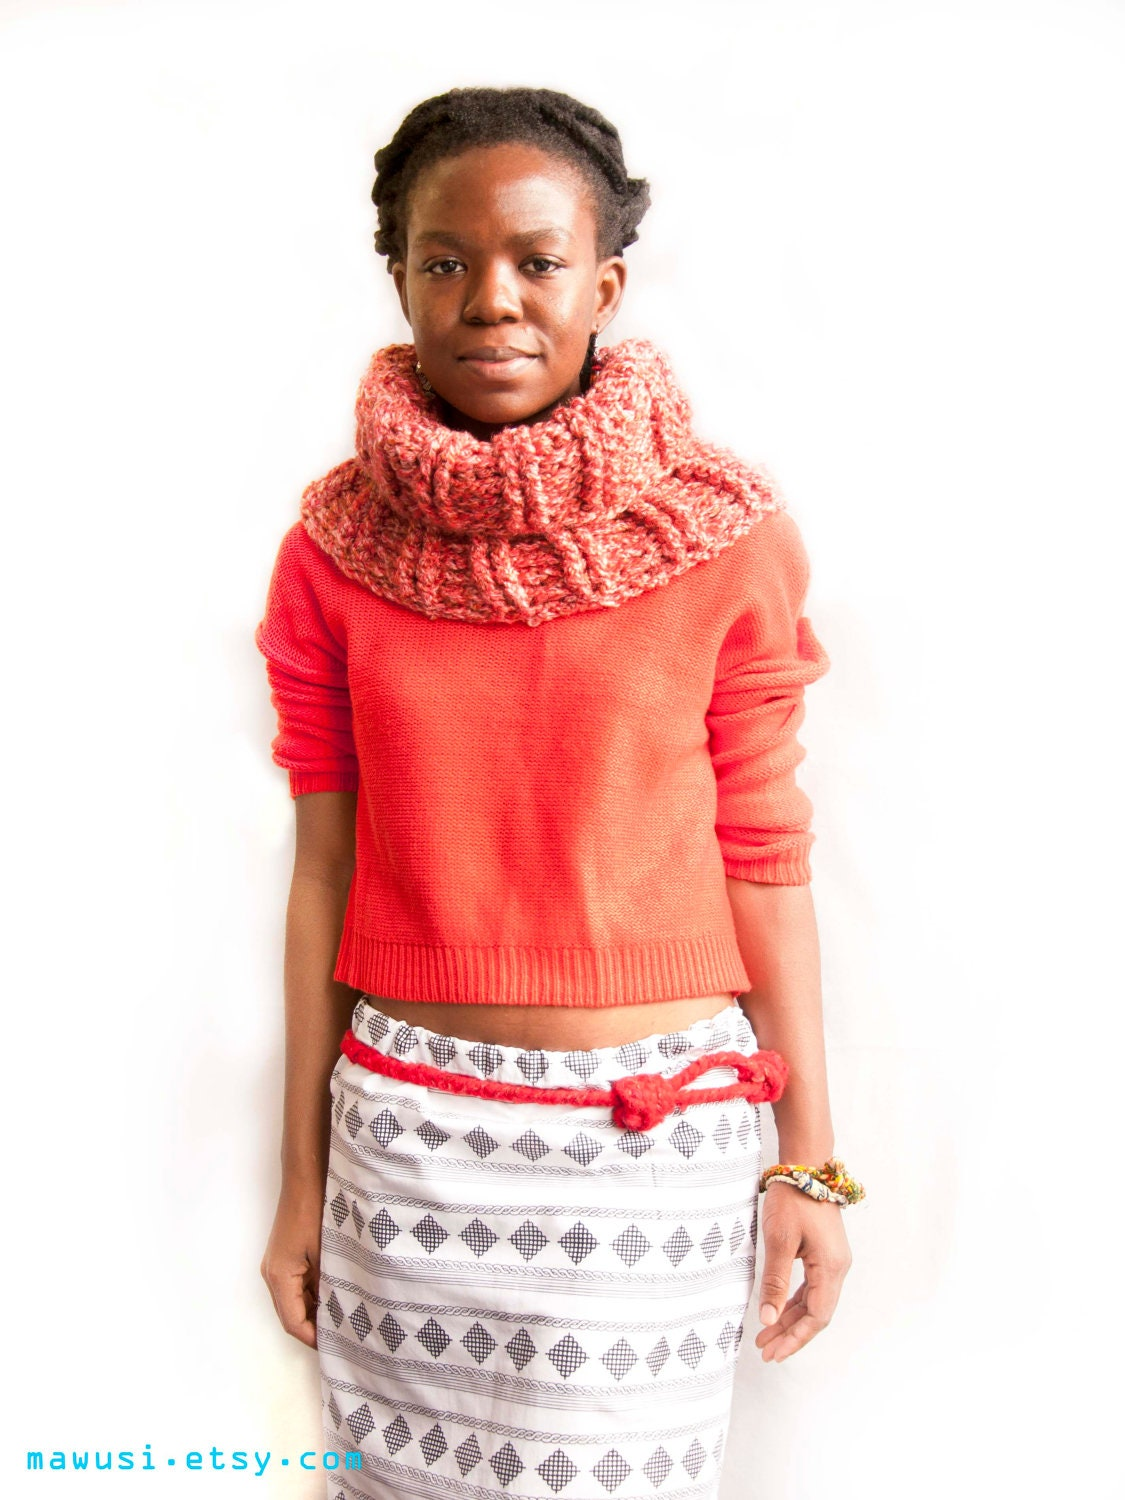 Rib Crochet Chunky Snood // Cowl // Neck Warmer in Coral Pink and Brown FOR HER - Under 50 Dollars - Ready to Ship - Mawusi